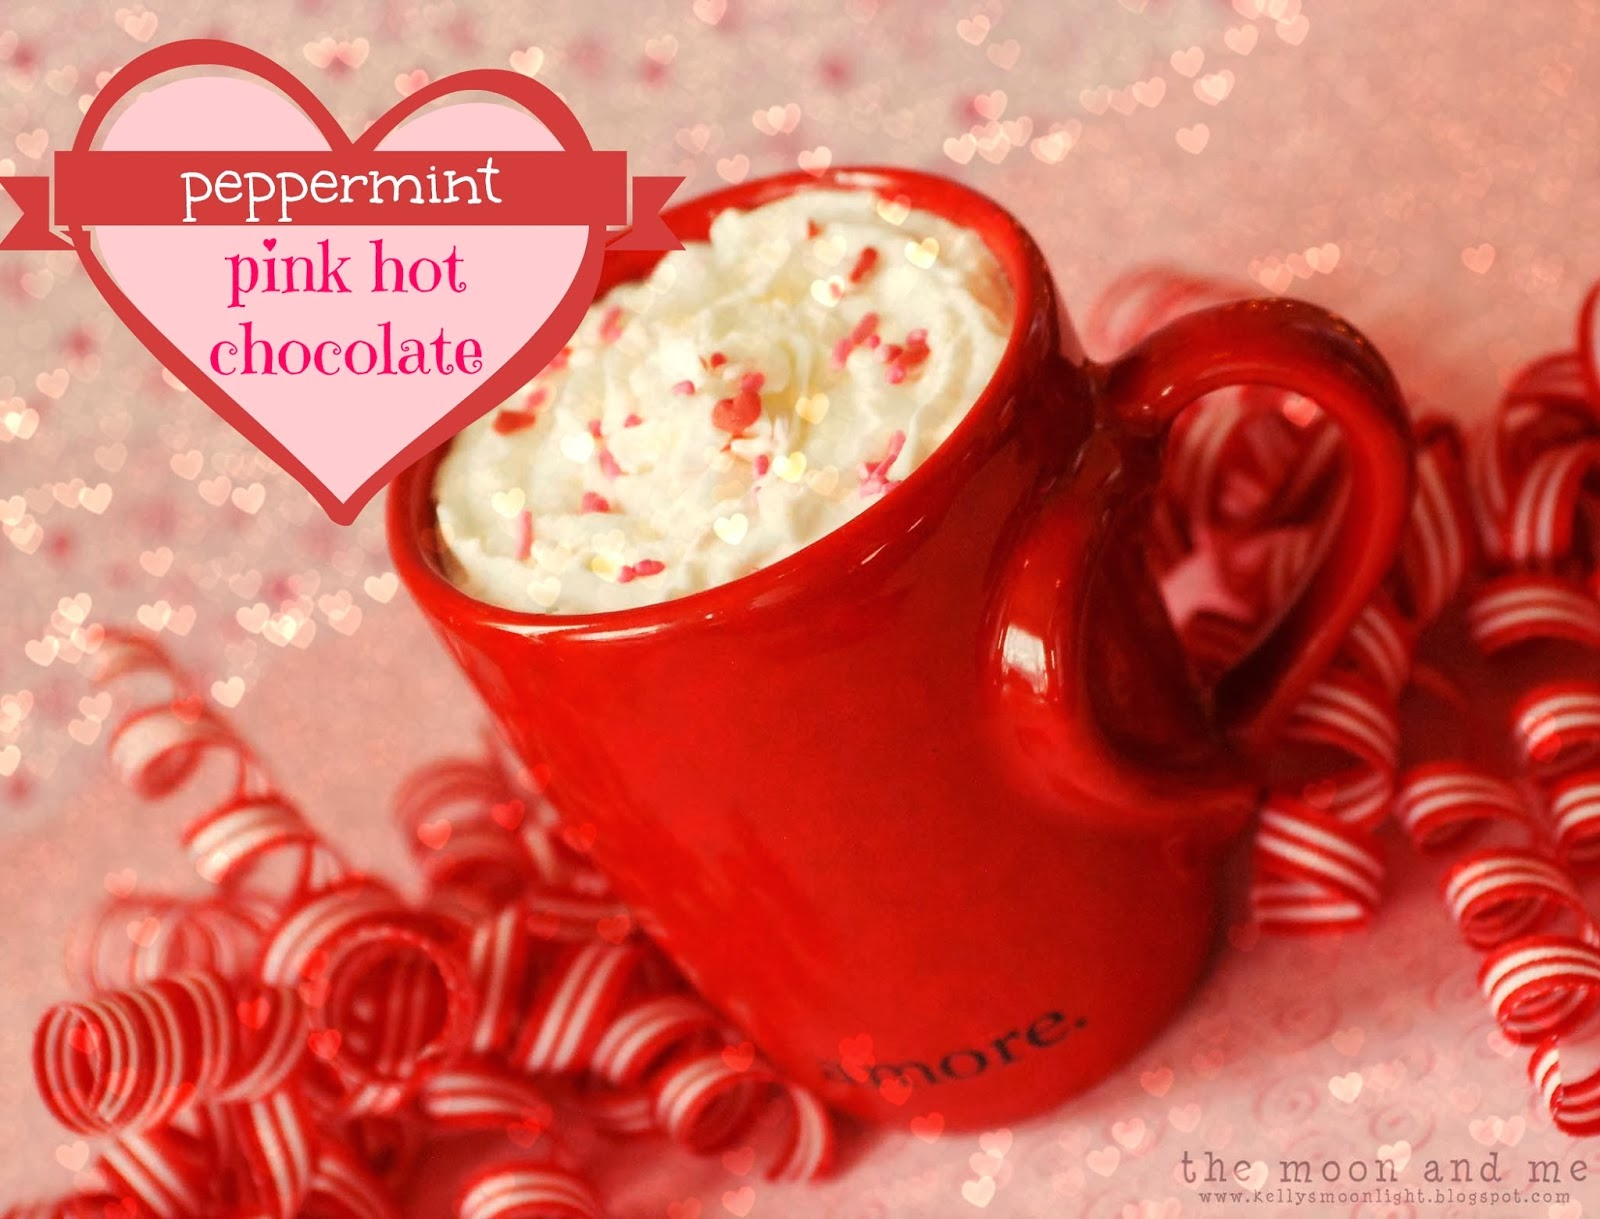 Peppermint Pink Hot Chocolate by The Moon and Me